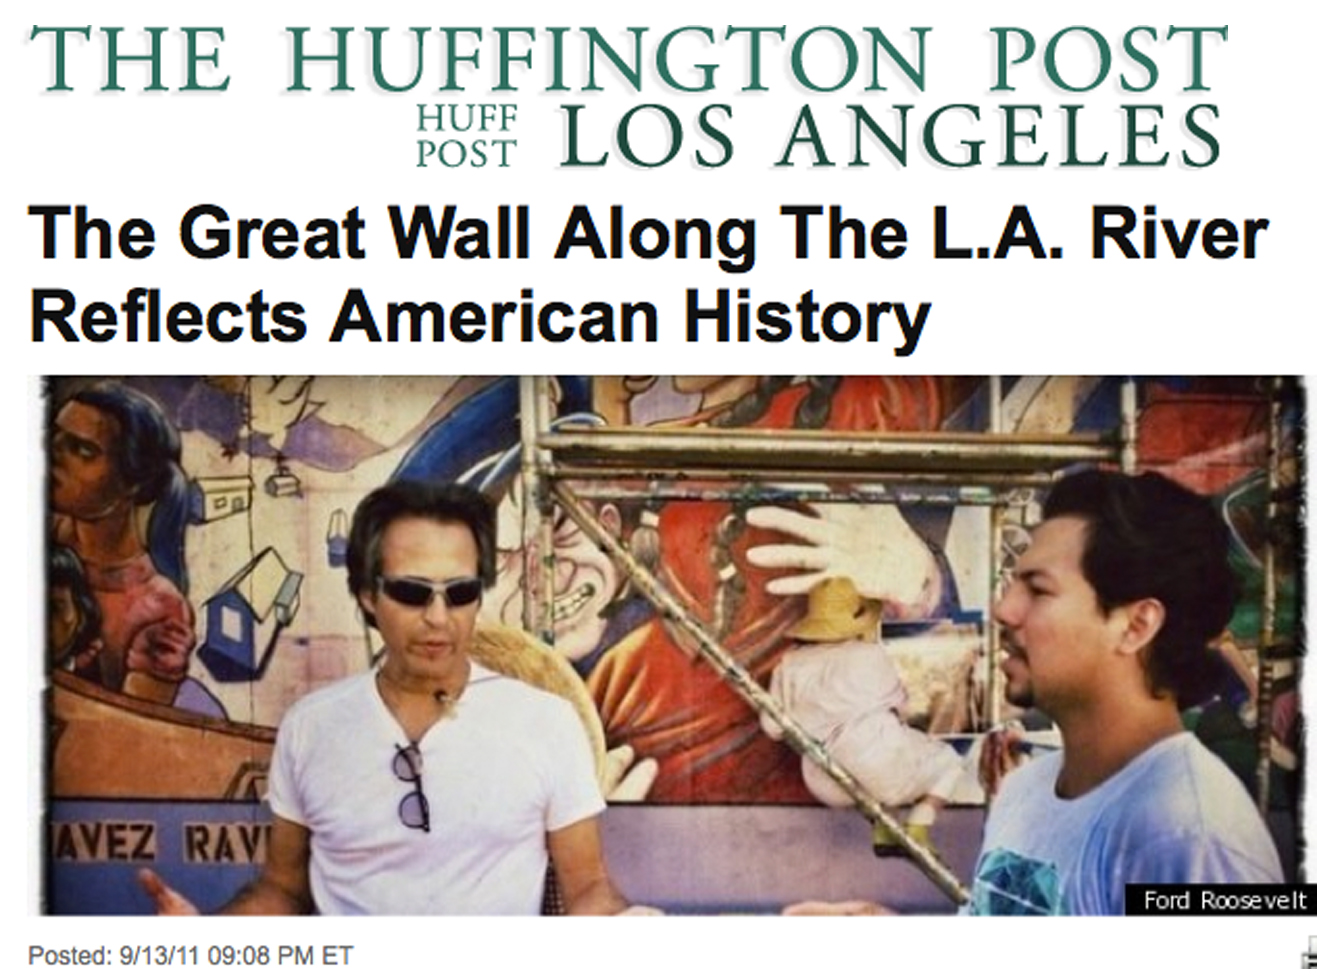 http://www.huffingtonpost.com/2011/09/13/the-great-wall-along-the-_n_961266.html